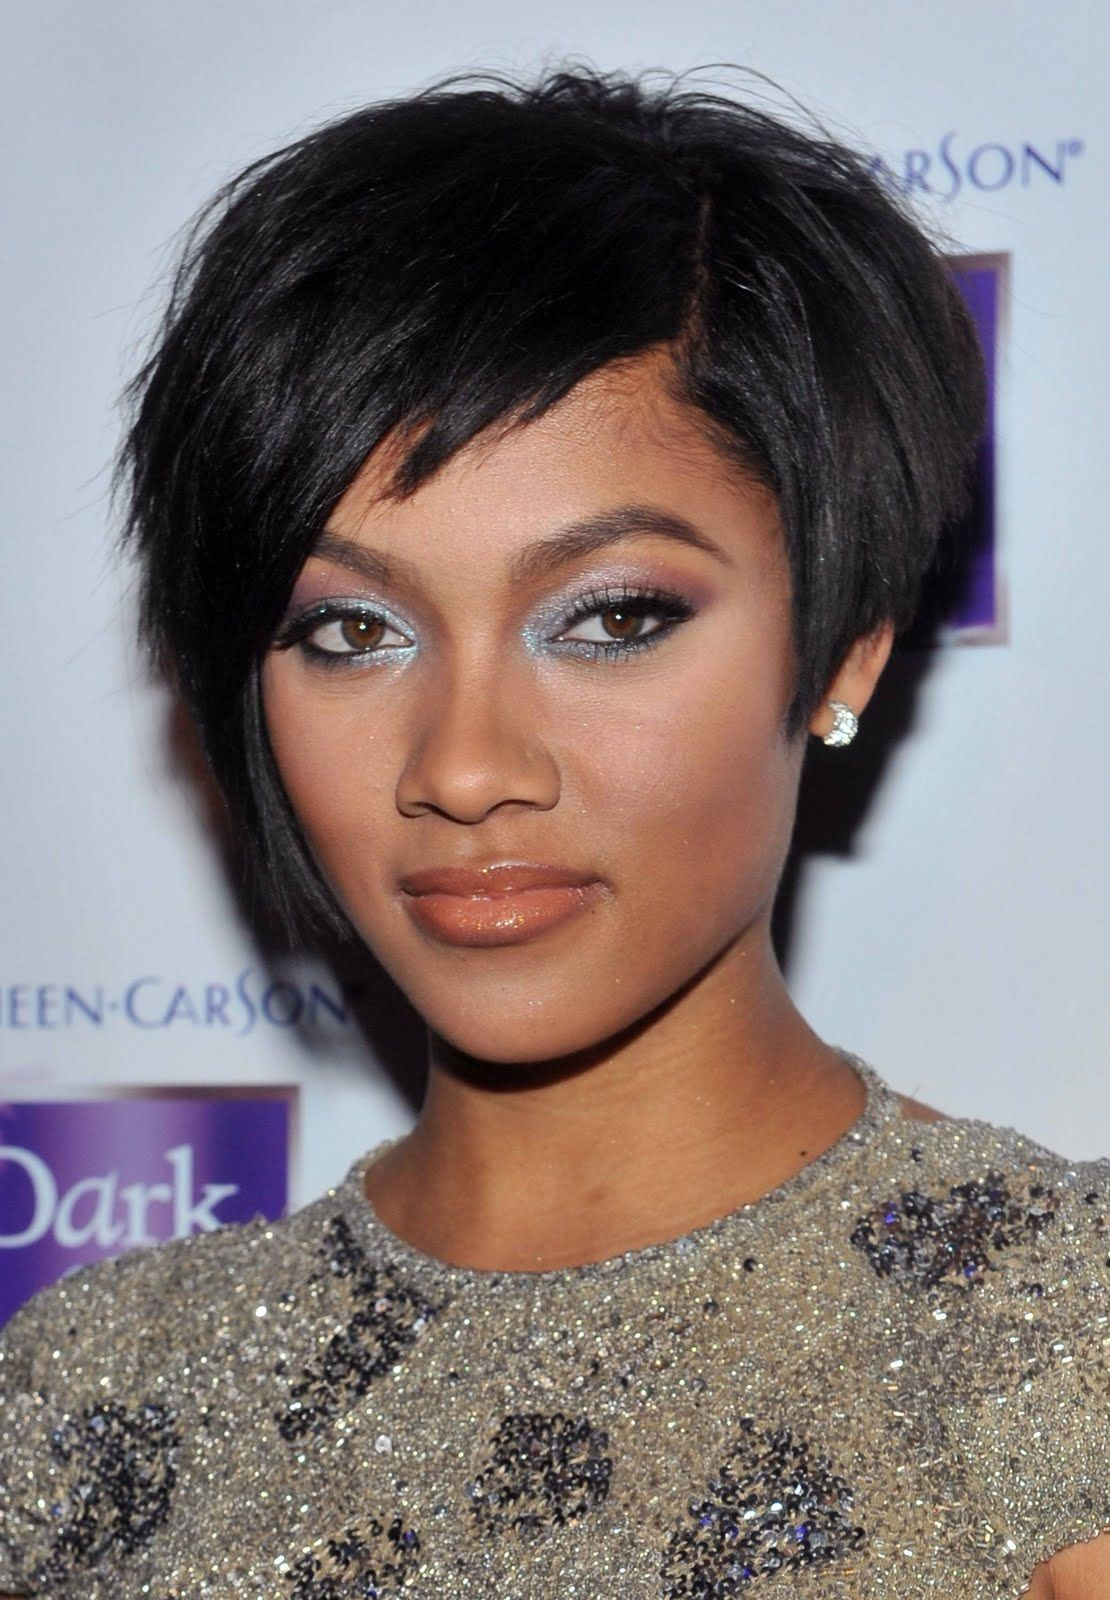 Groovy 1000 Images About Textured Hairstyles Cuts Men And Women On Short Hairstyles For Black Women Fulllsitofus